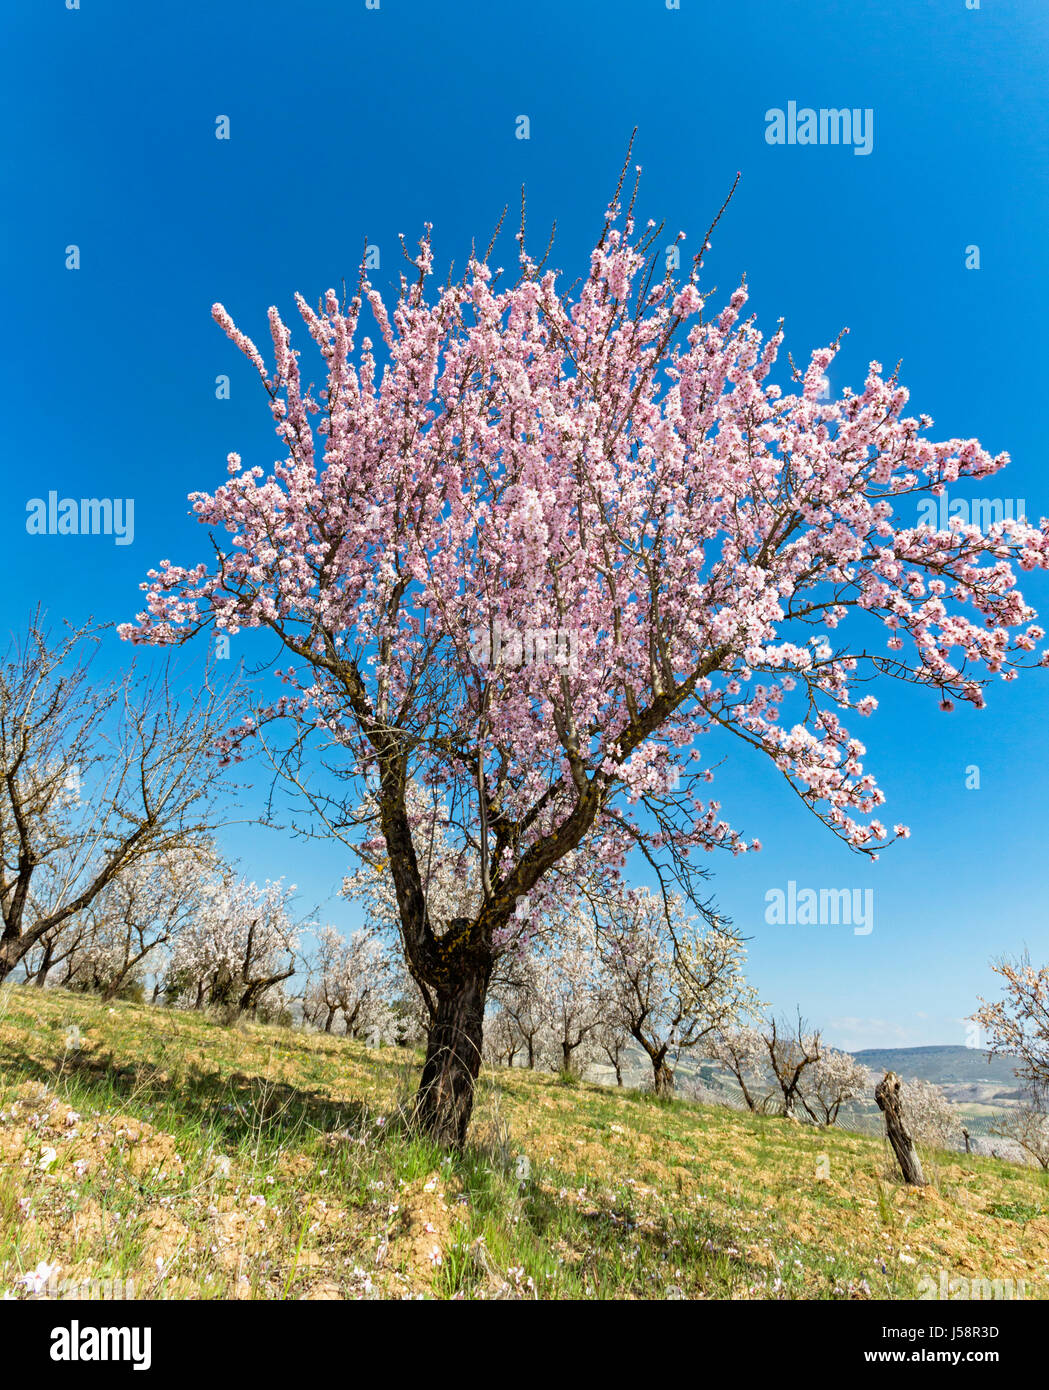 Almond trees in blossom. Prunus amygdalus. Near Arenas del Rey, Granada Province, Andalusia, southern Spain. - Stock Image